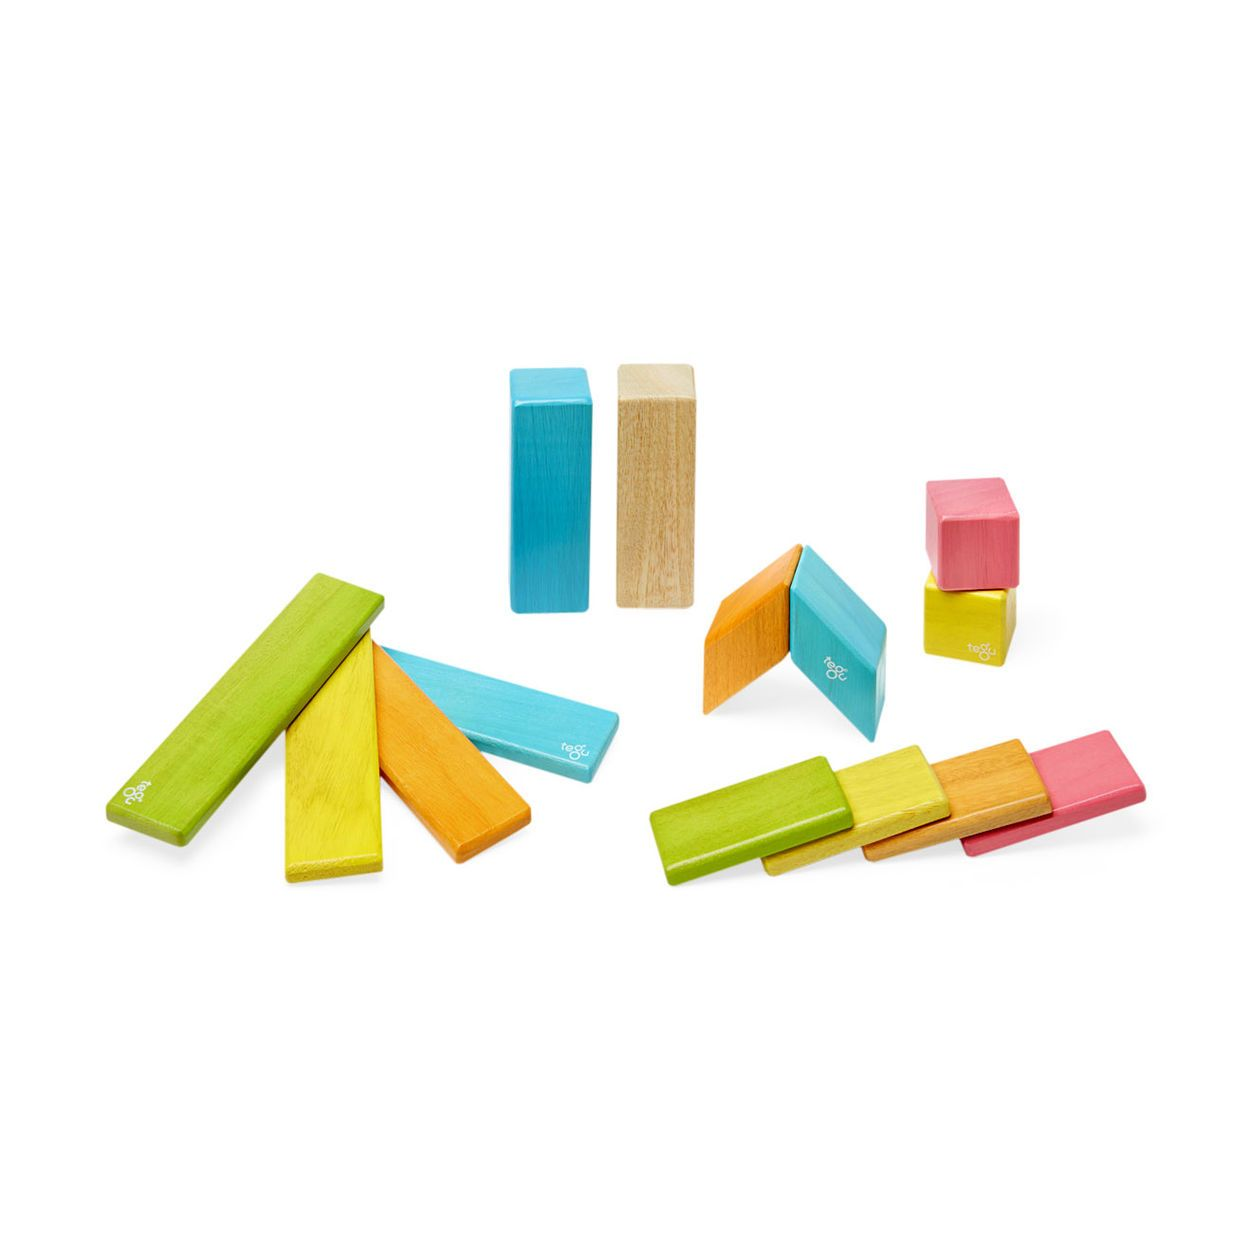 Tegu 24 piece Set in Tints | Magnetic wooden blocks, Wooden